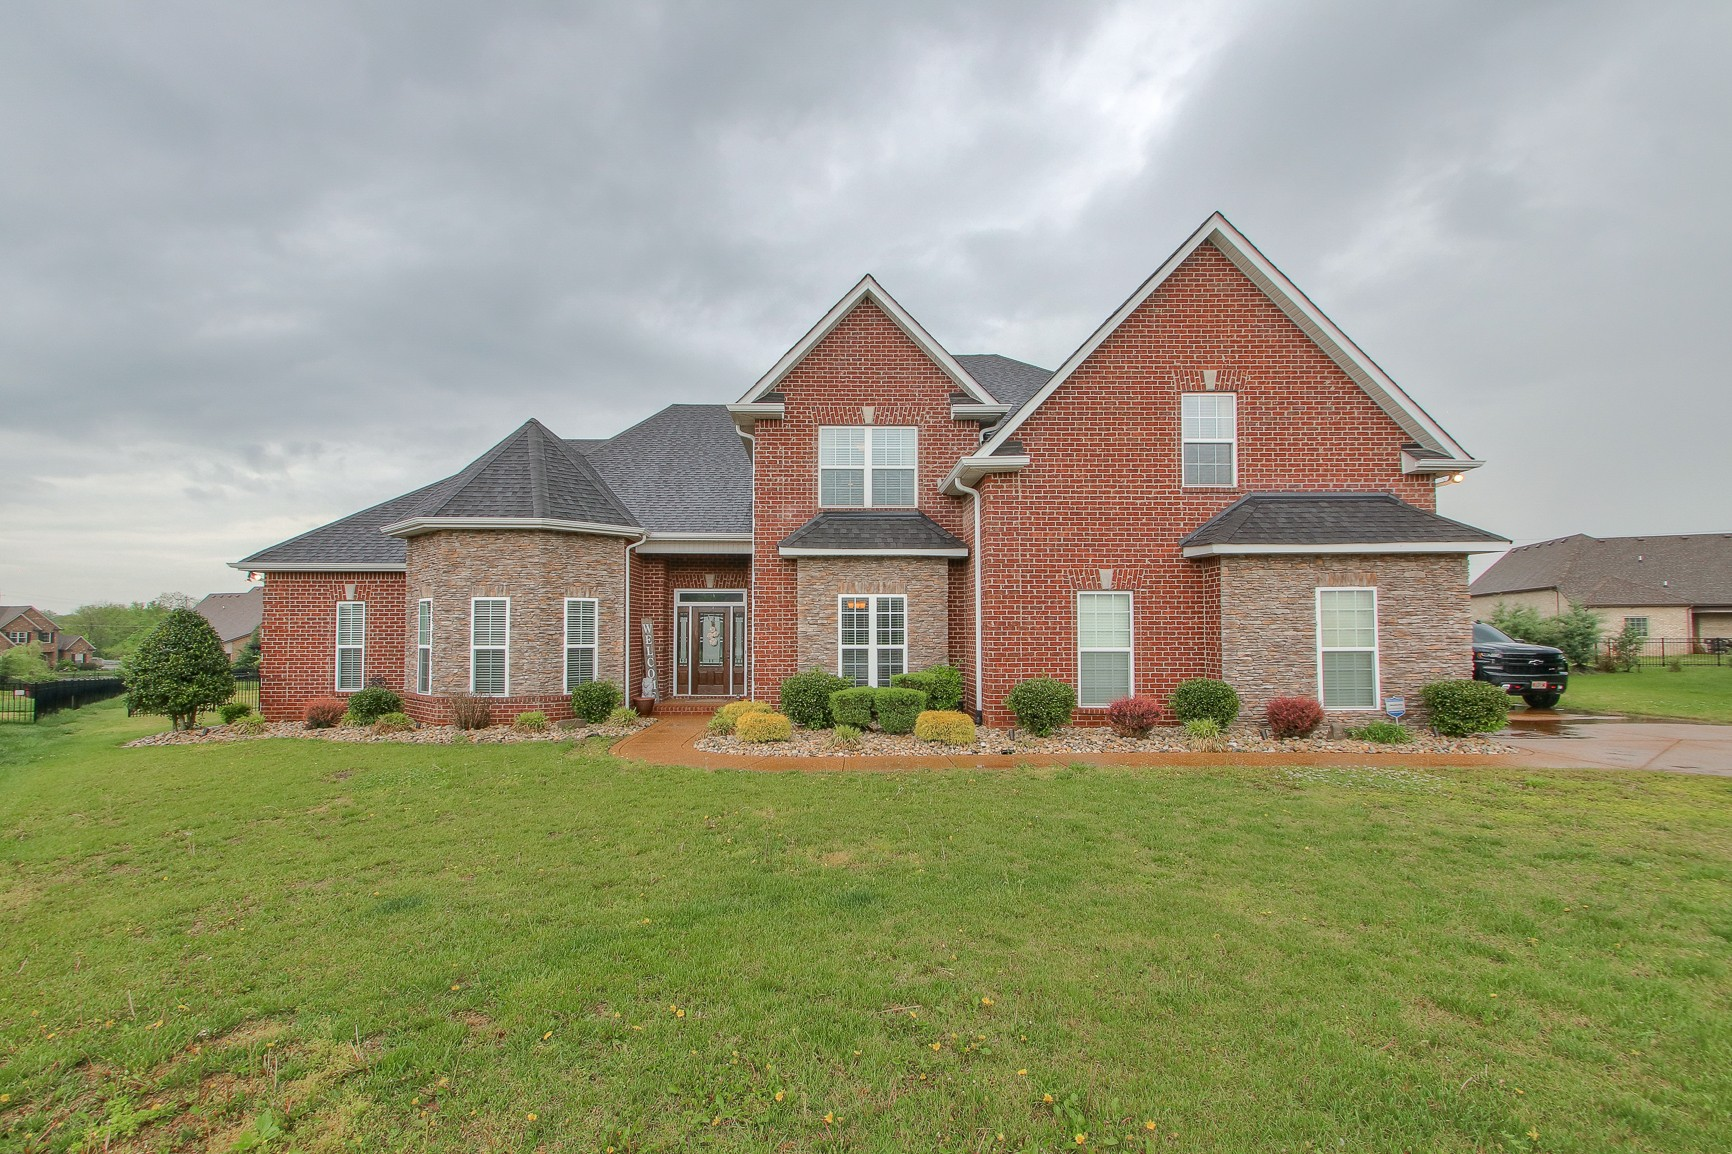 2623 Cloverfields Ct Property Photo - Murfreesboro, TN real estate listing